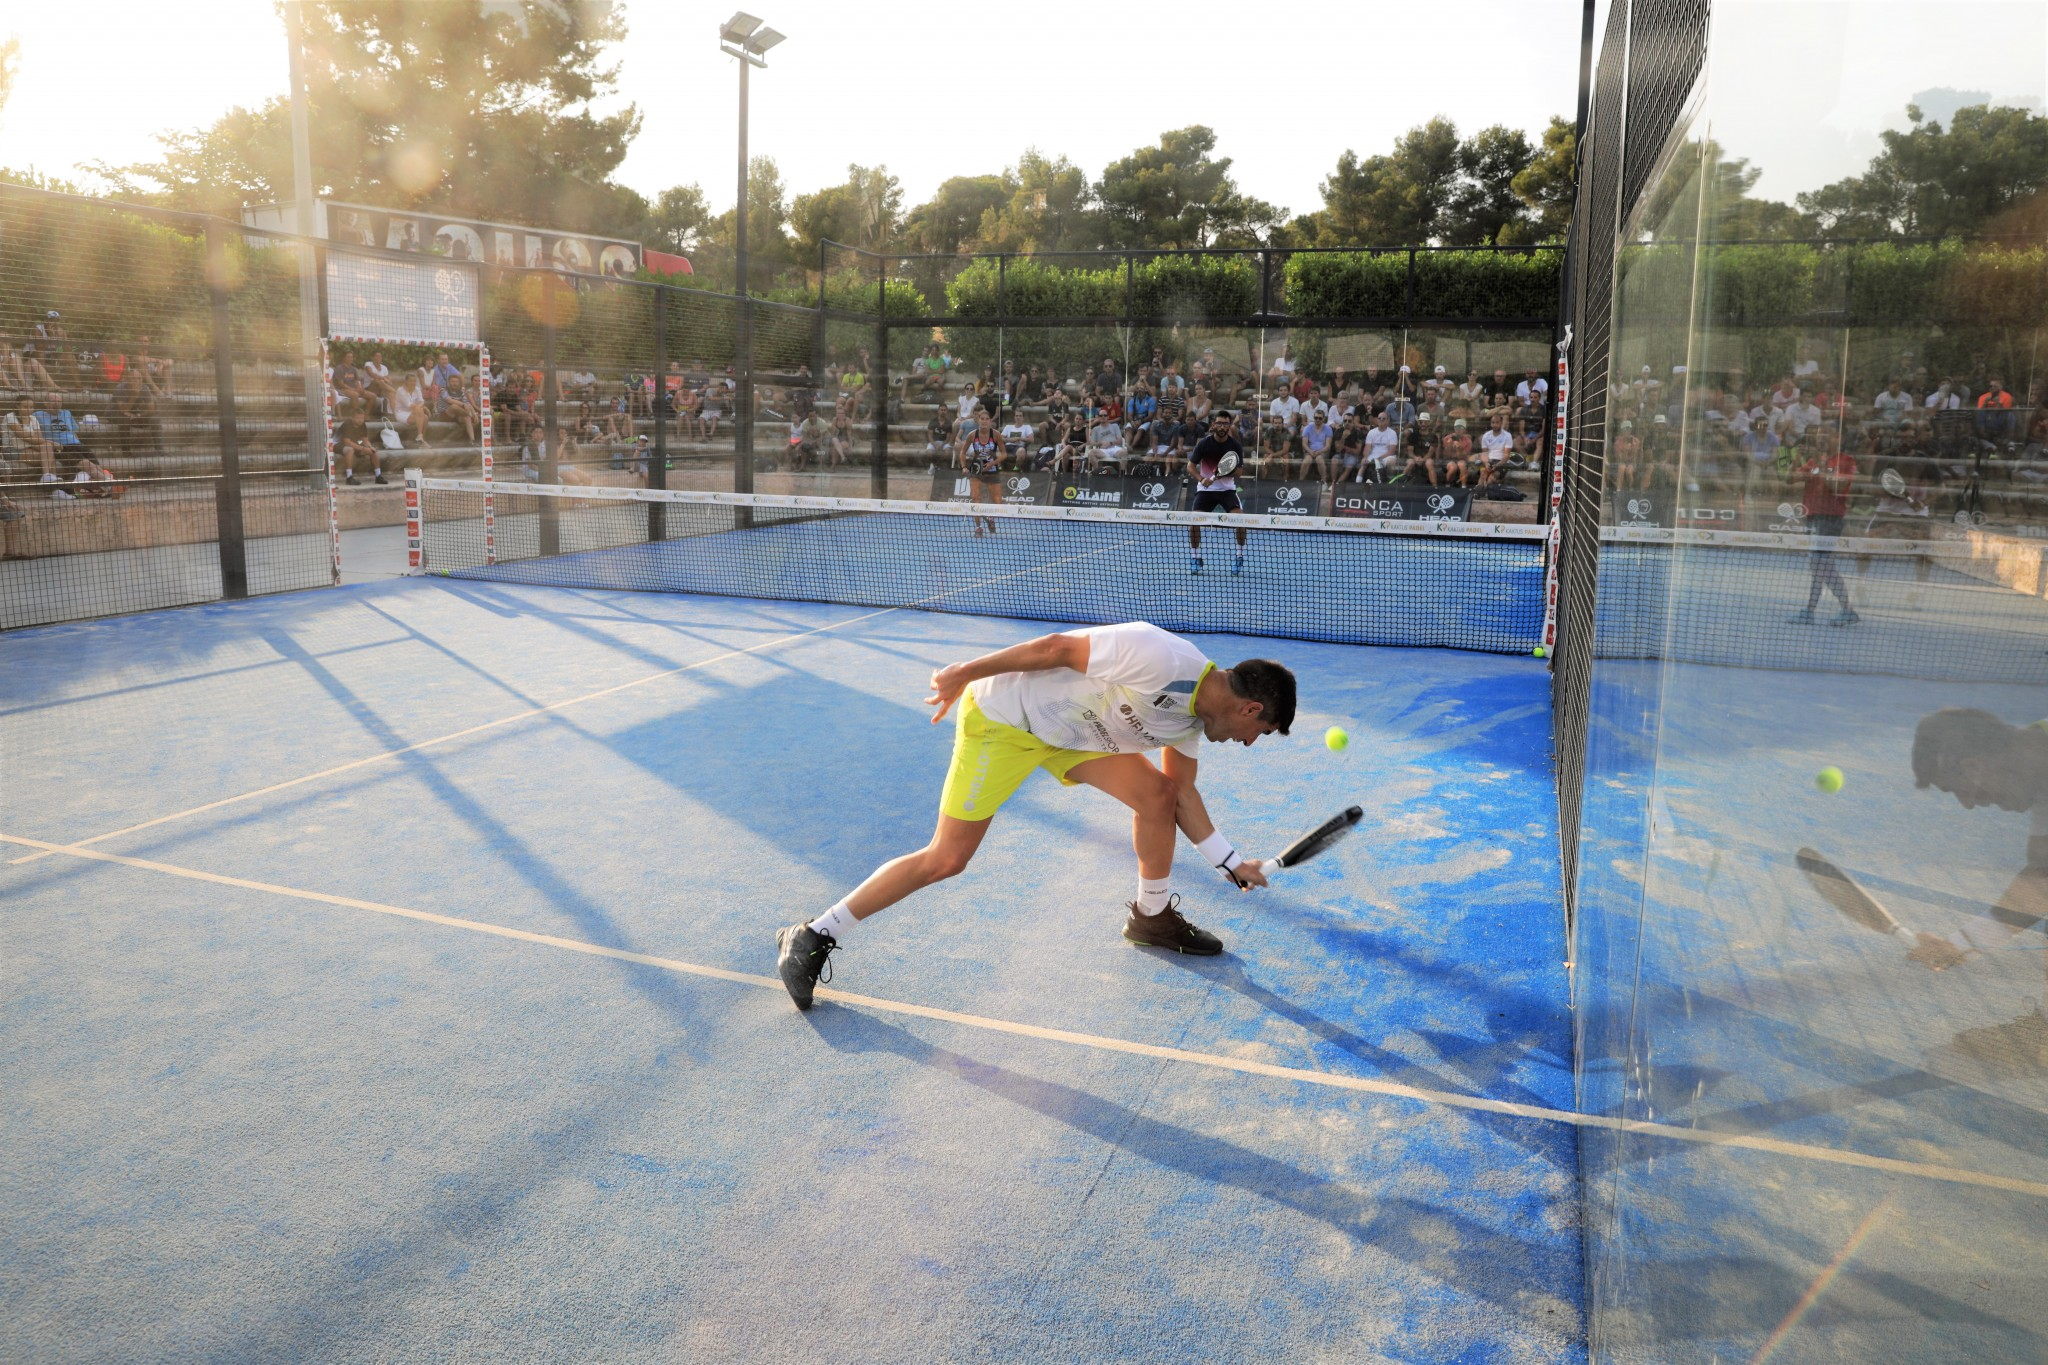 Sparks at Head Padel Open 2019